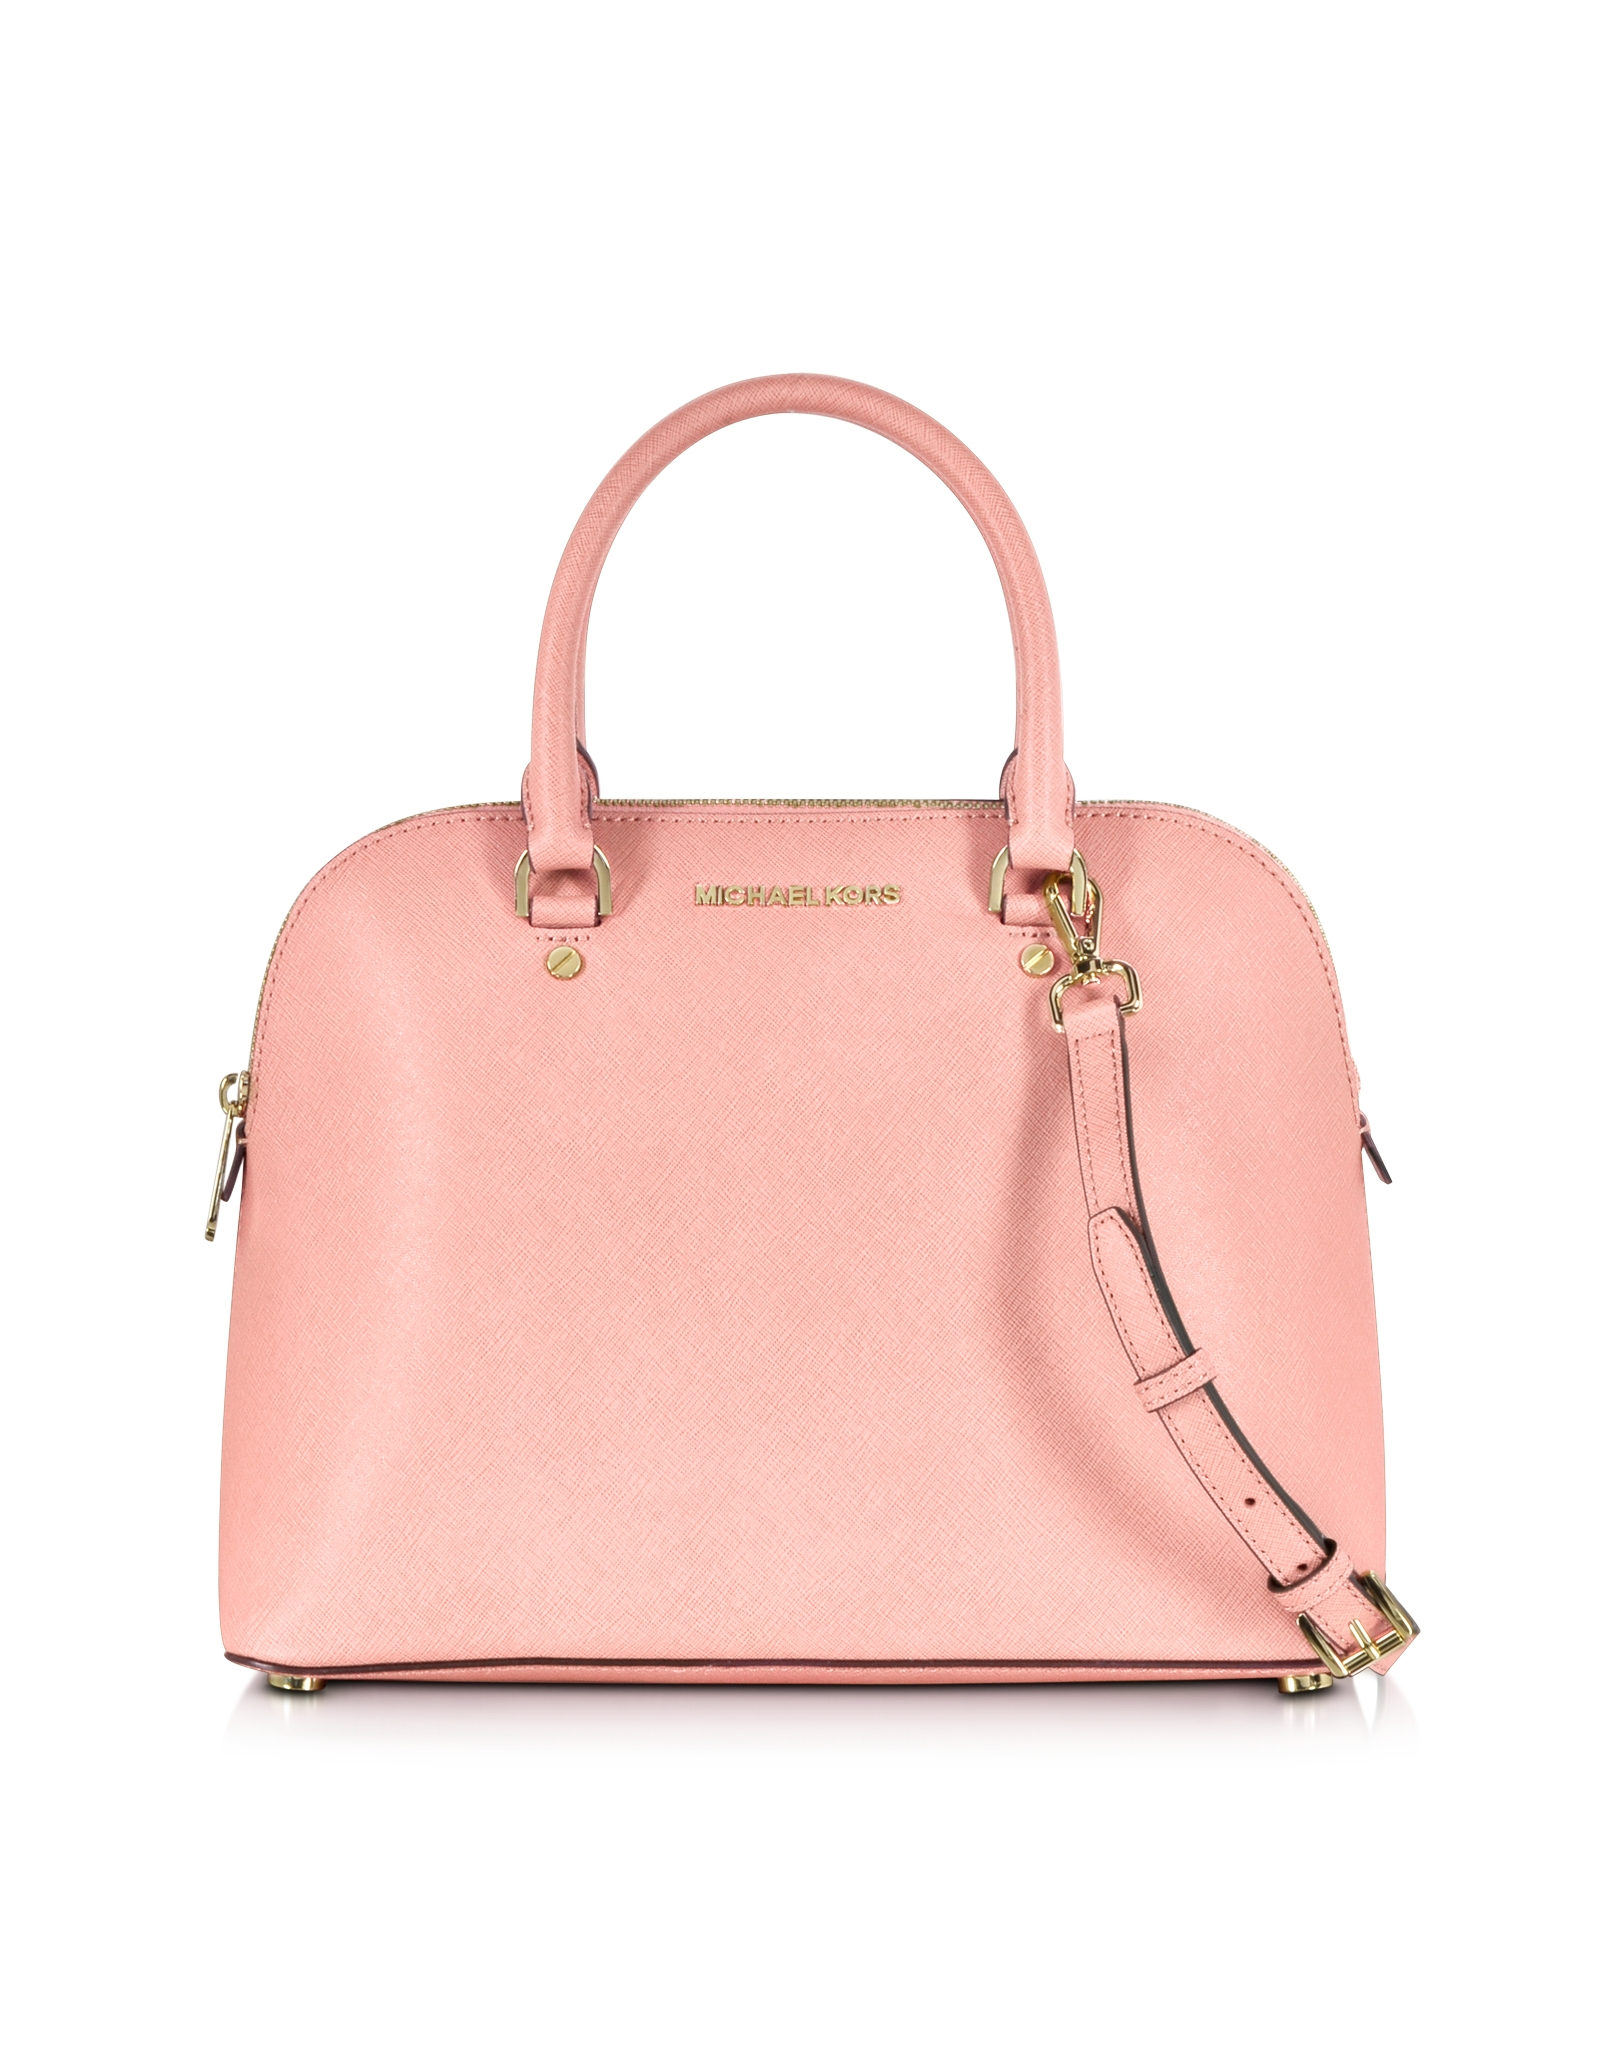 michael kors cindy large saffiano leather dome satchel bag in pink lyst. Black Bedroom Furniture Sets. Home Design Ideas